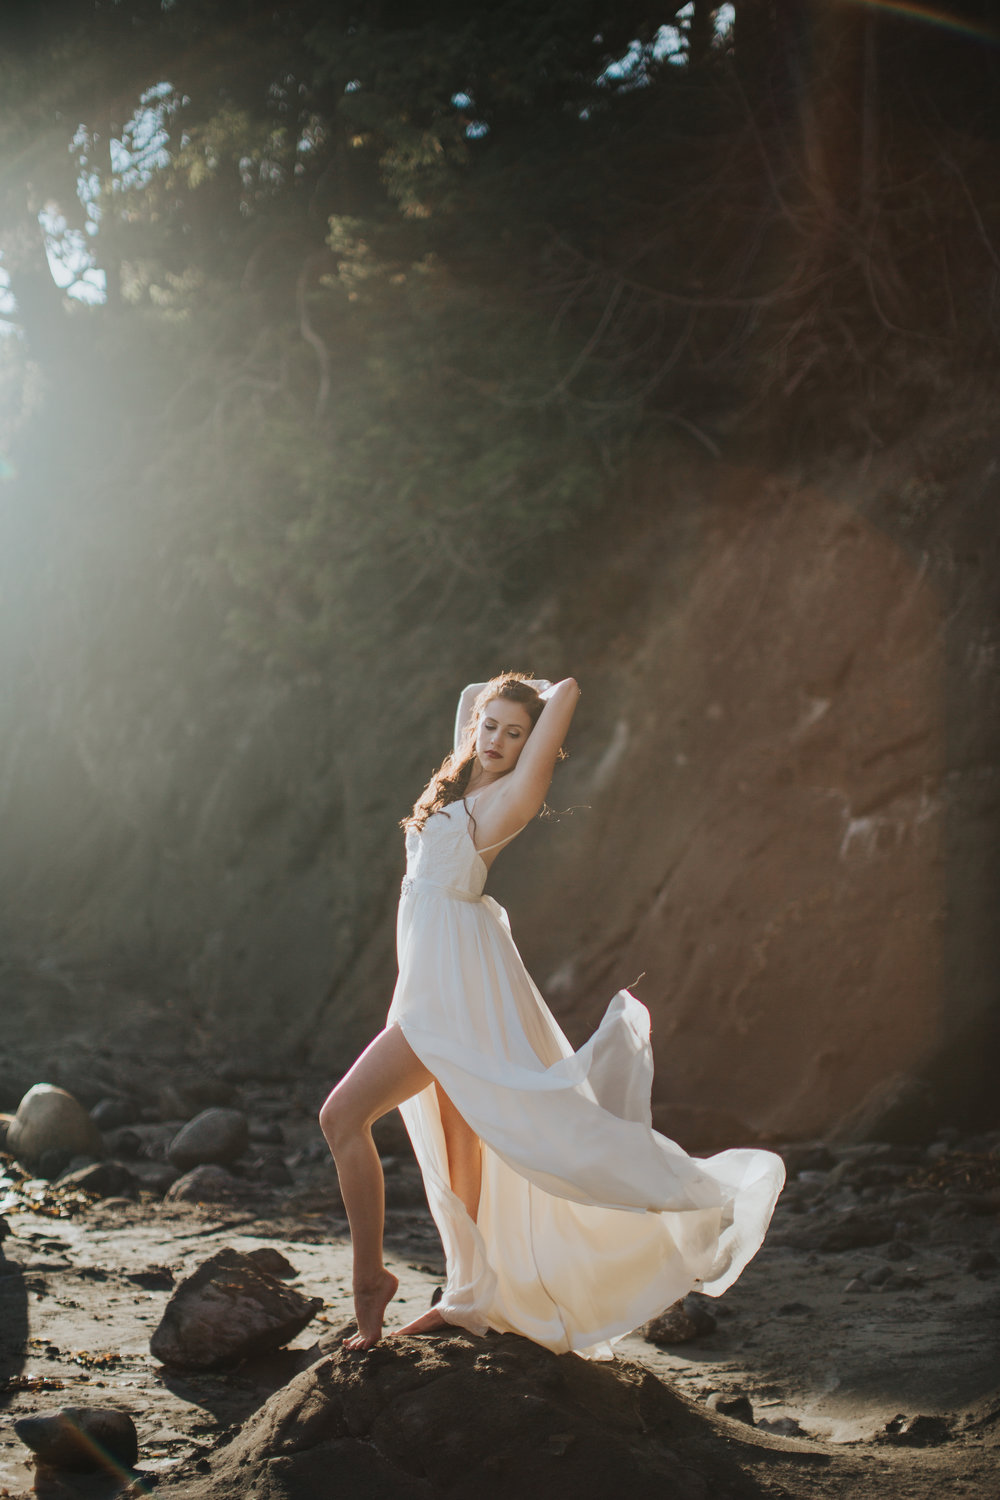 Port-Angeles-Salt-Creek-beach-wedding-bride-PNW-olympic-peninsula-photographer-Kayla-Dawn-Photography-outdoors-golden-hour-dancer-dress (13).jpg